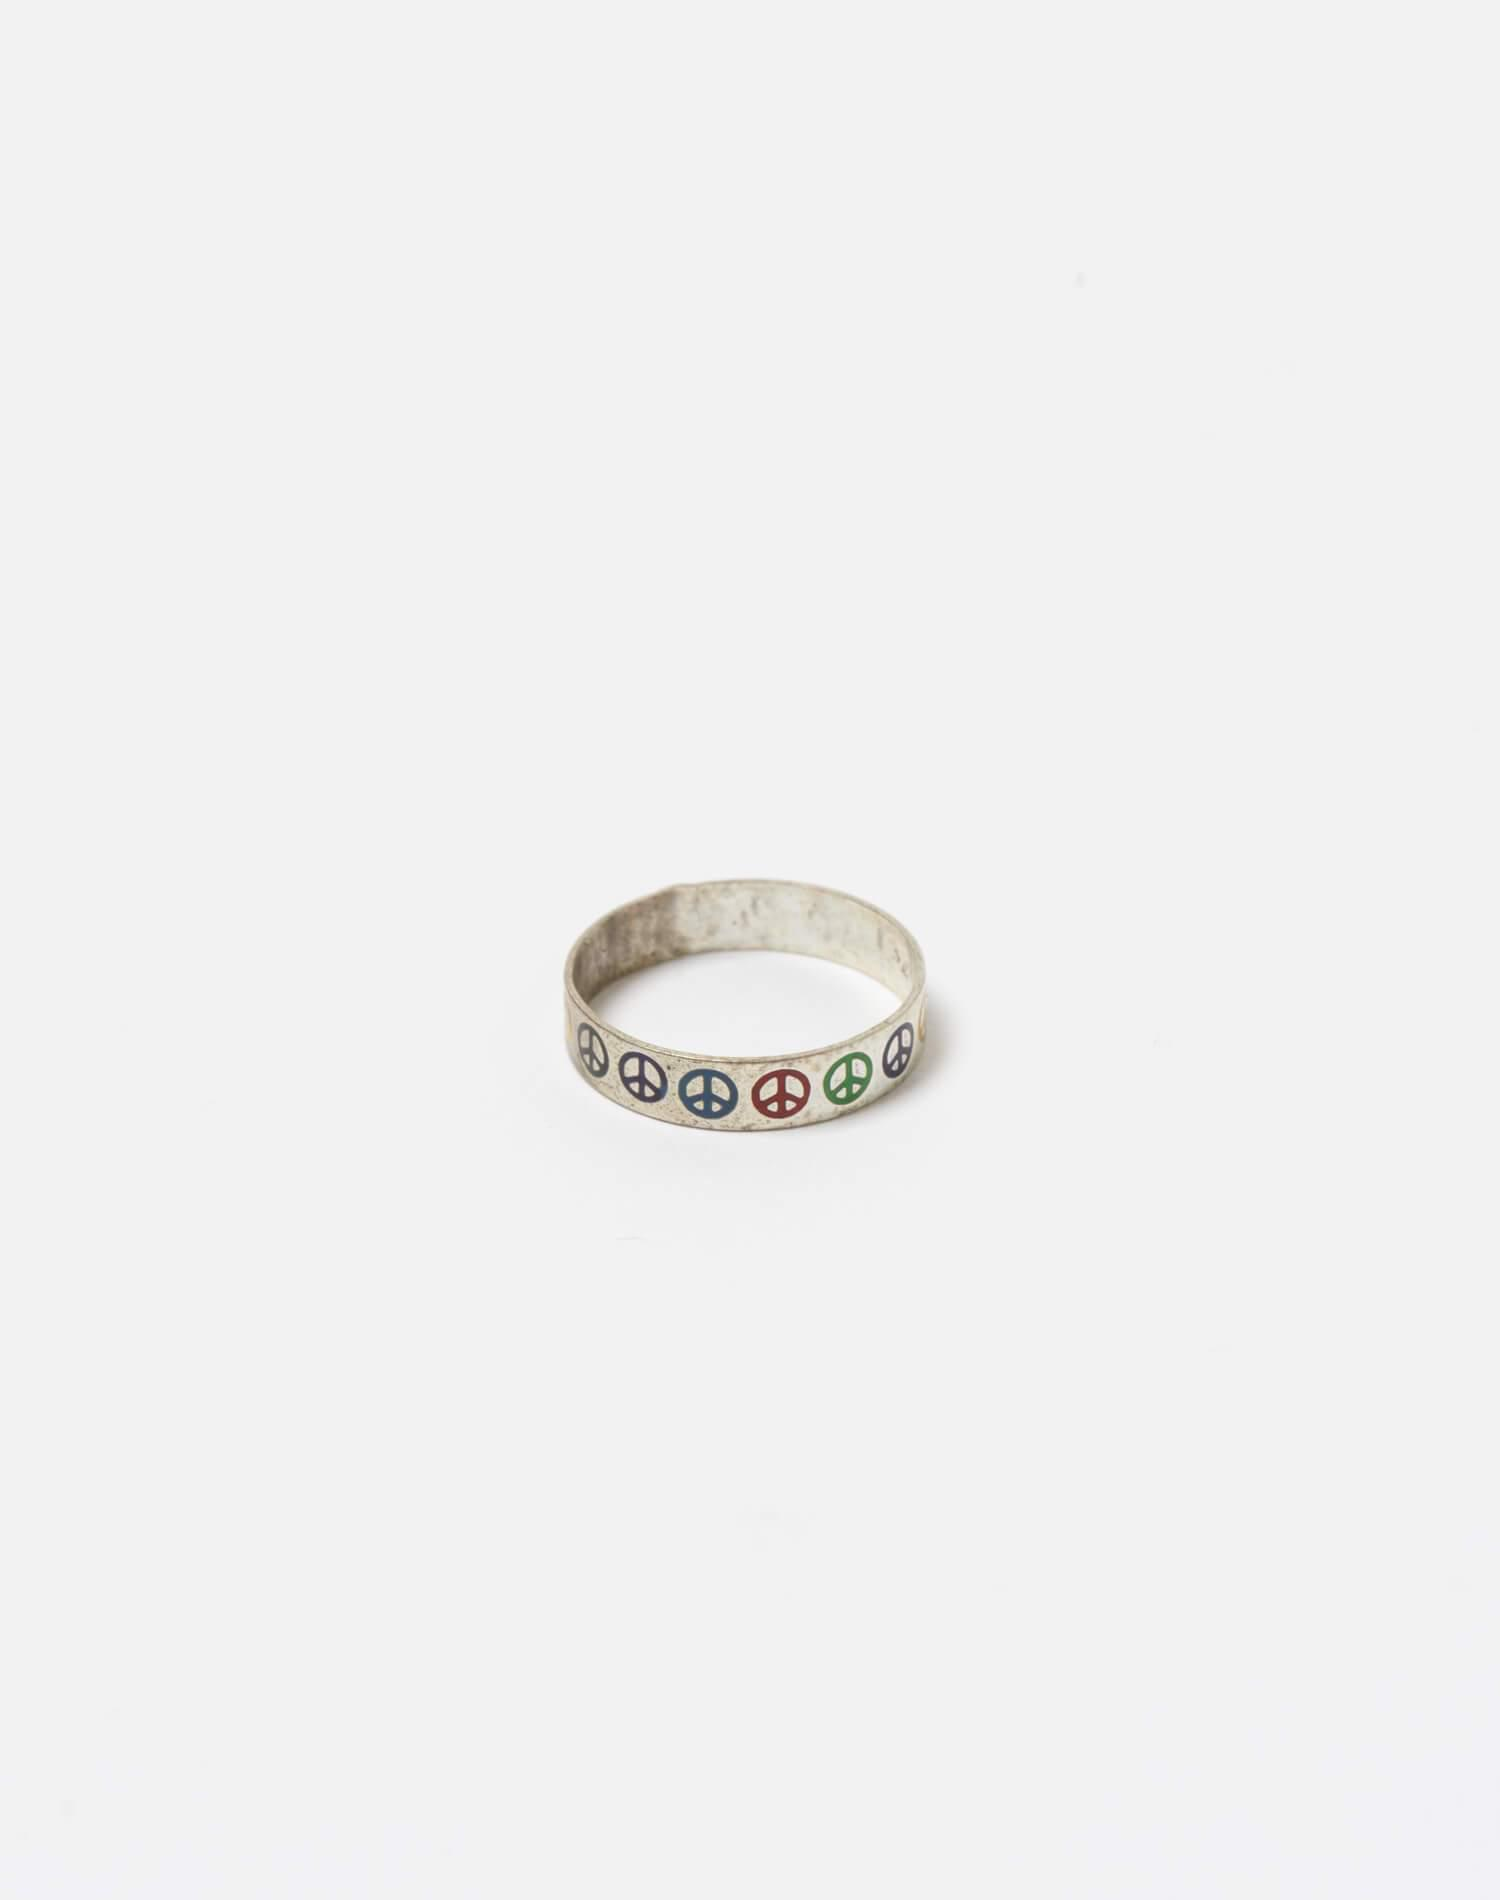 1960s Mexican Sterling Silver Inlaid Turquoise Peace Sign Ring - #104